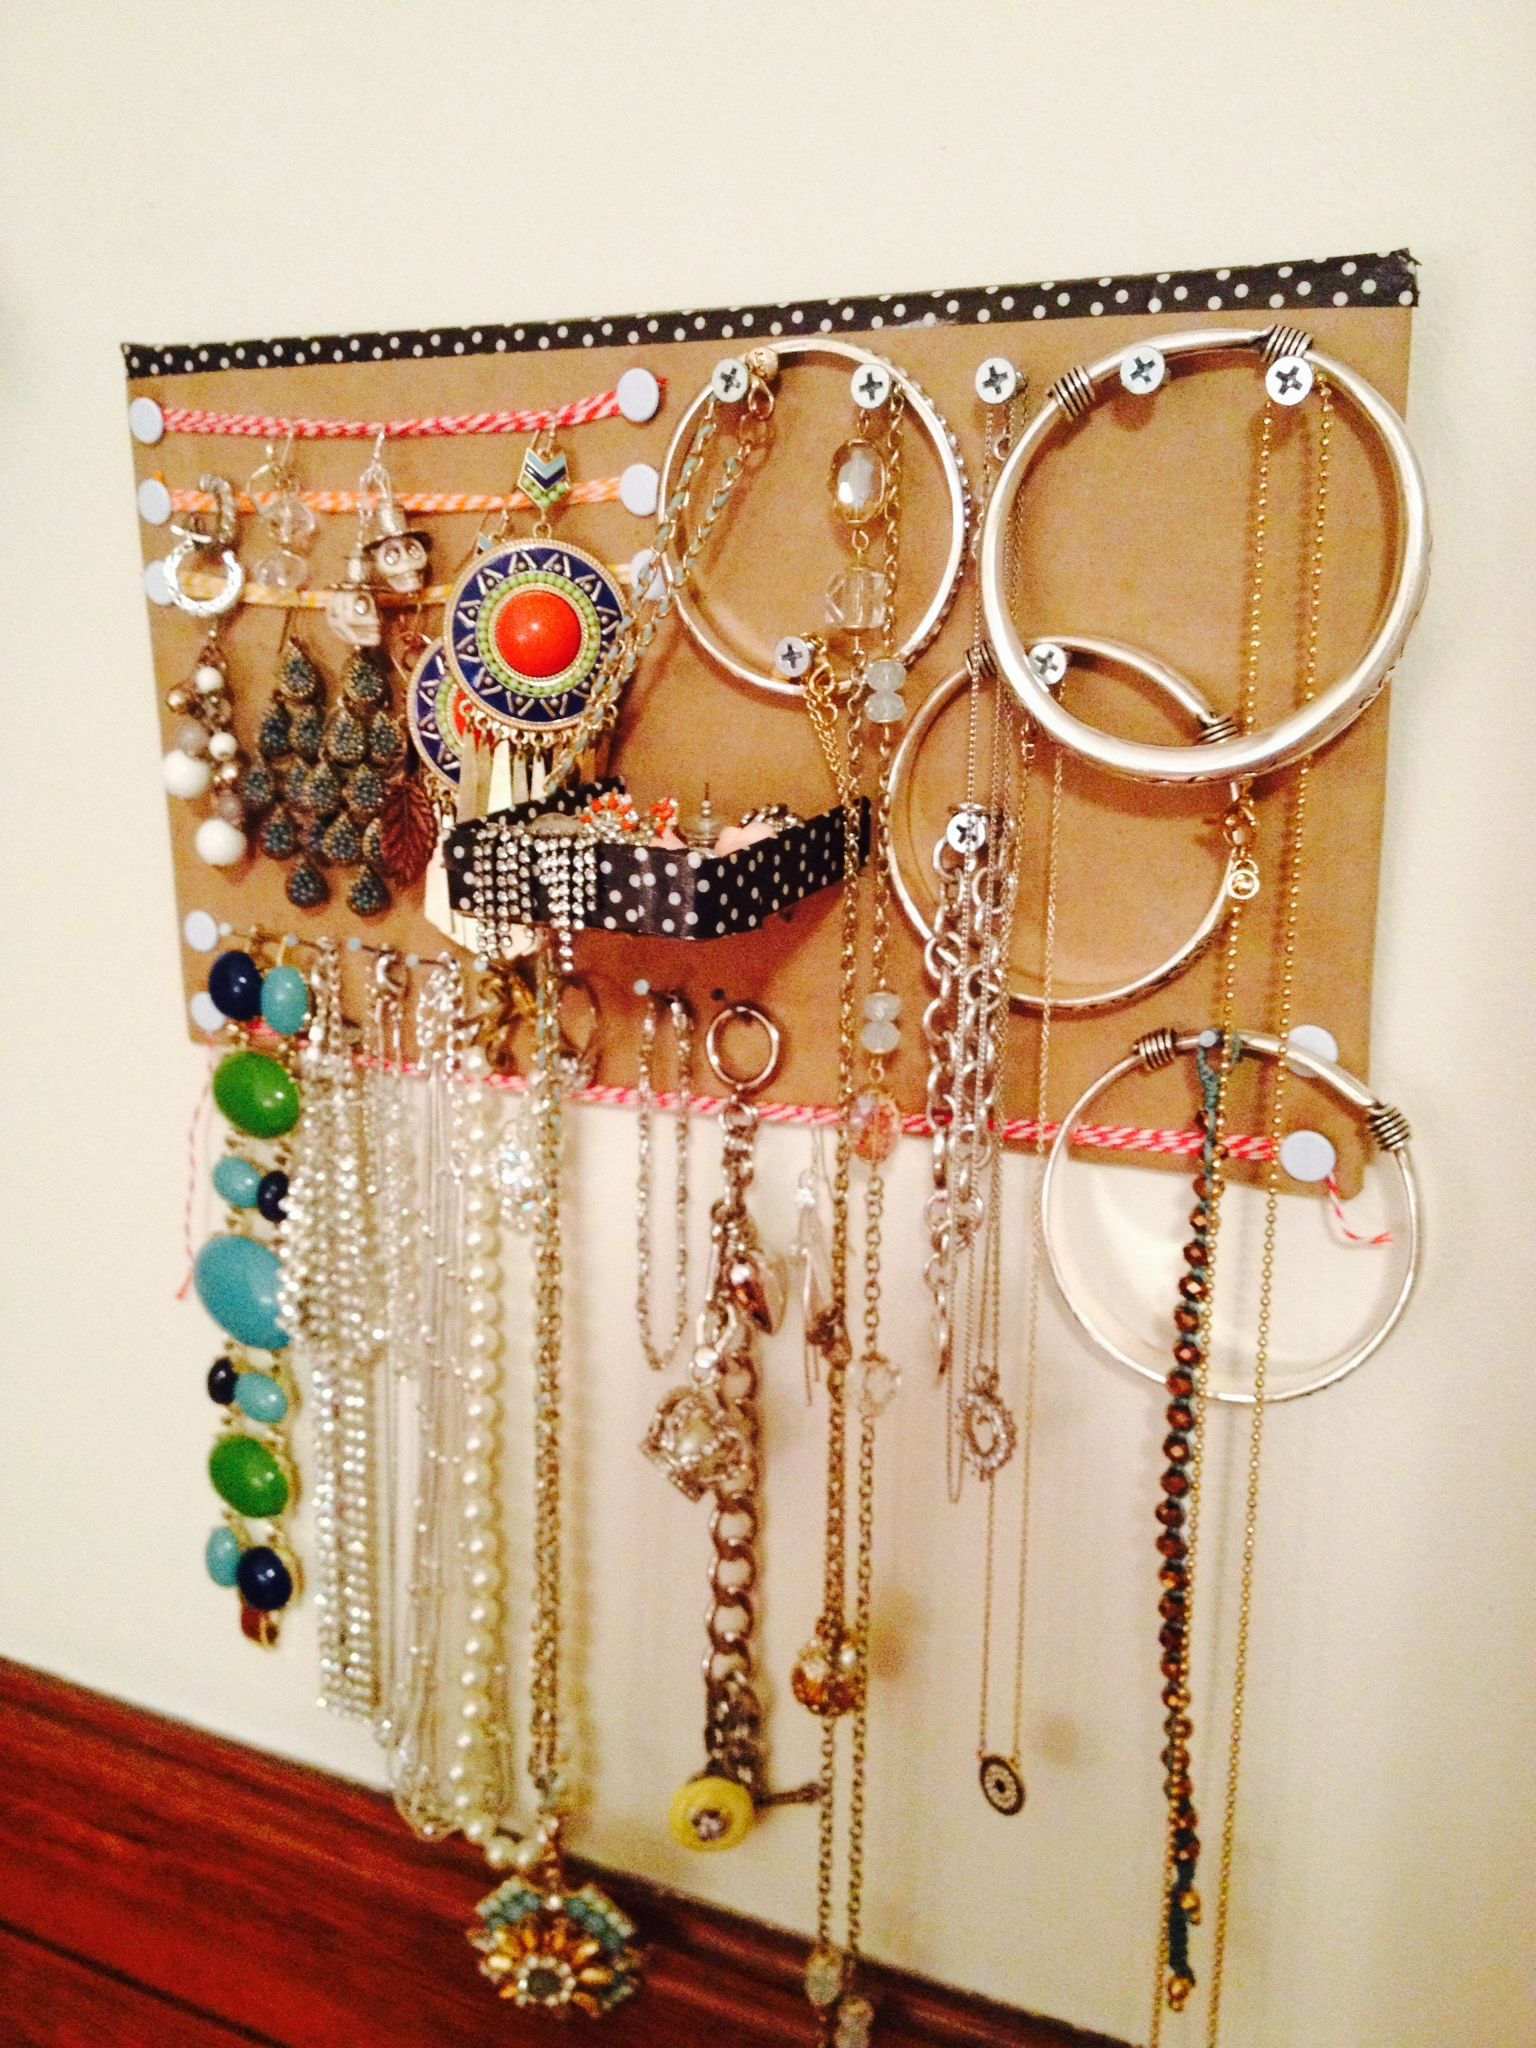 Homemade Hanging Jewelry Organizer stacked cardboard covered in